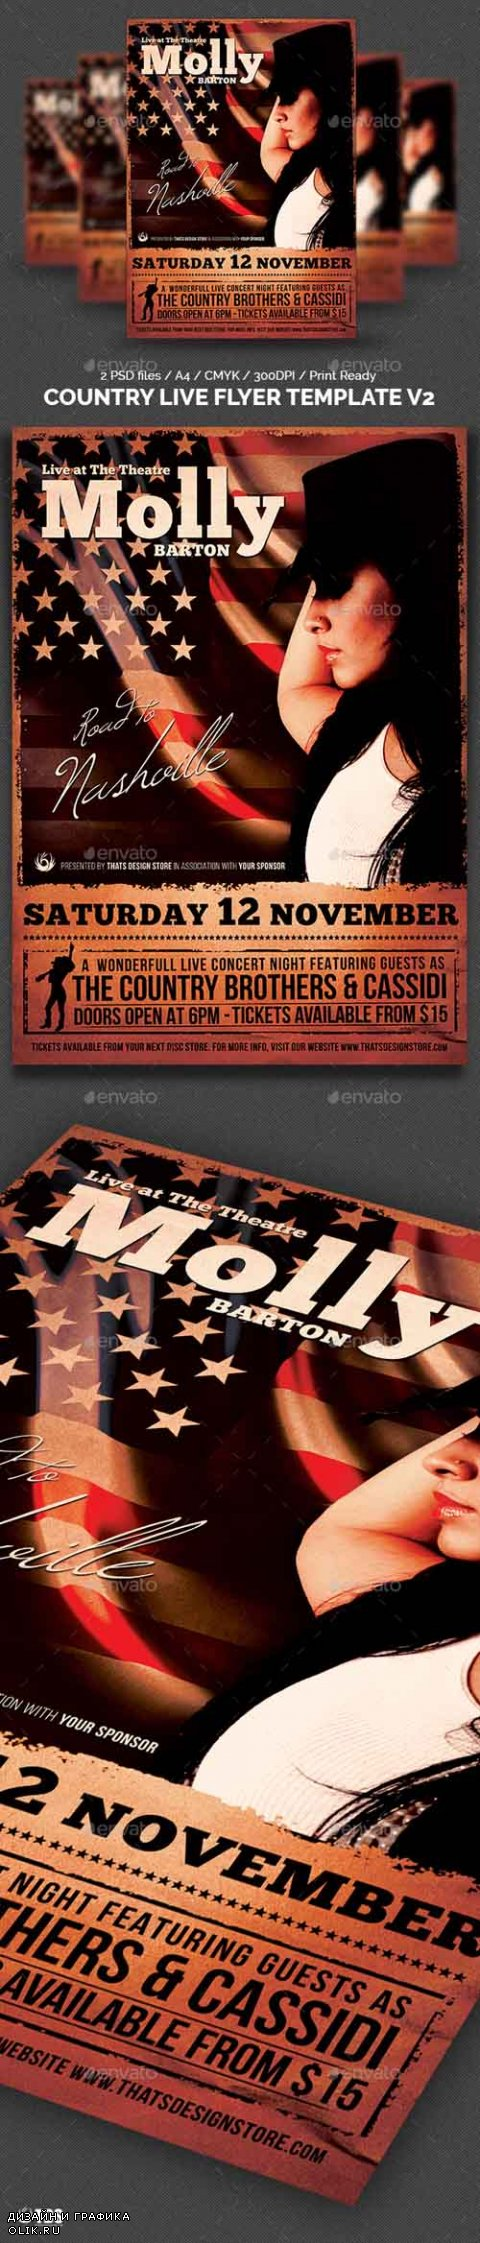 Country Live Flyer Template V2 8055448